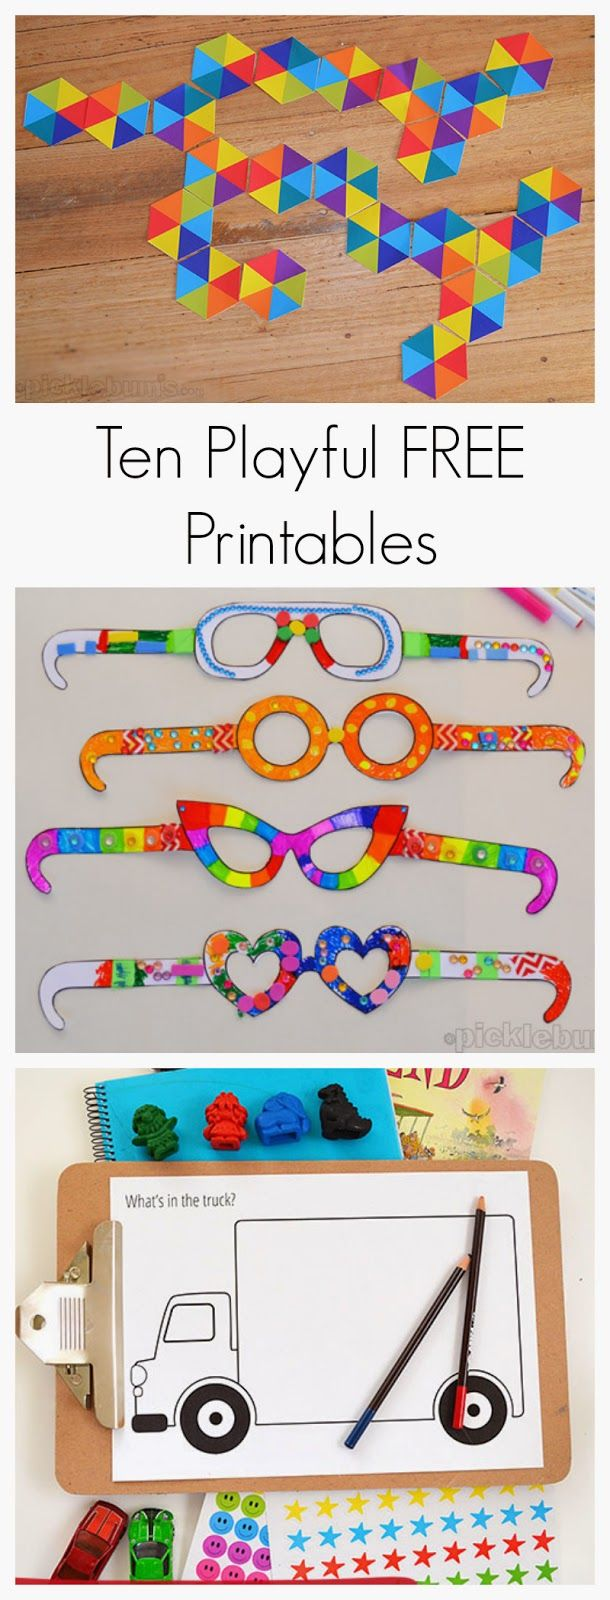 Ten Playful Free Printables for Kids from Fun at Home with Kids